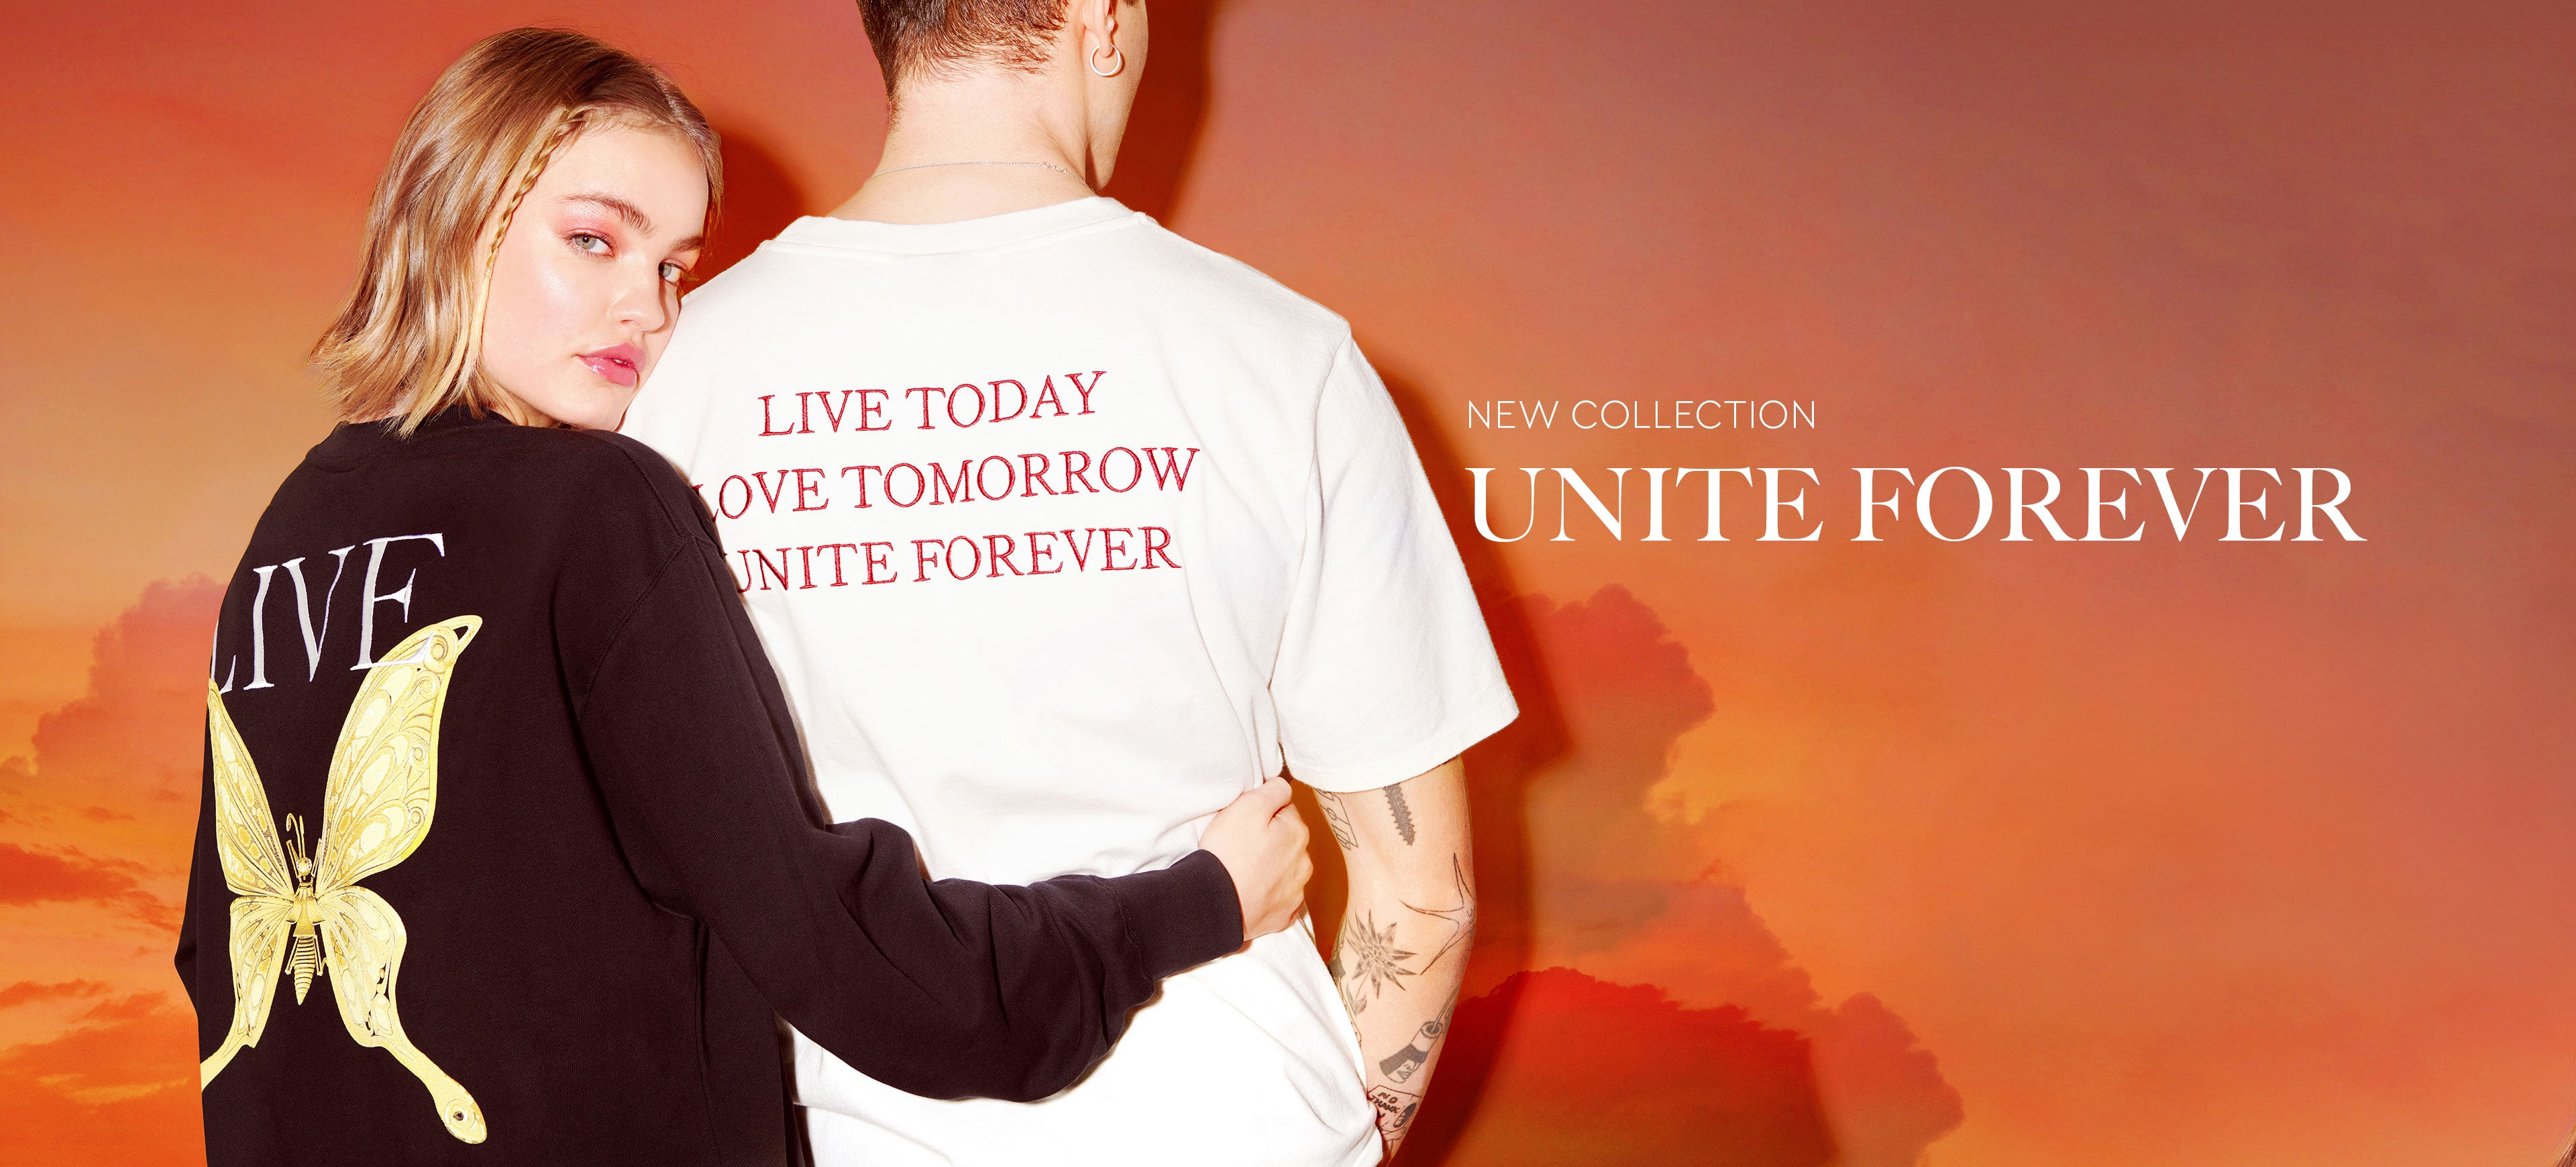 TML by Tomorrowland Unite Forever - Coming Soon